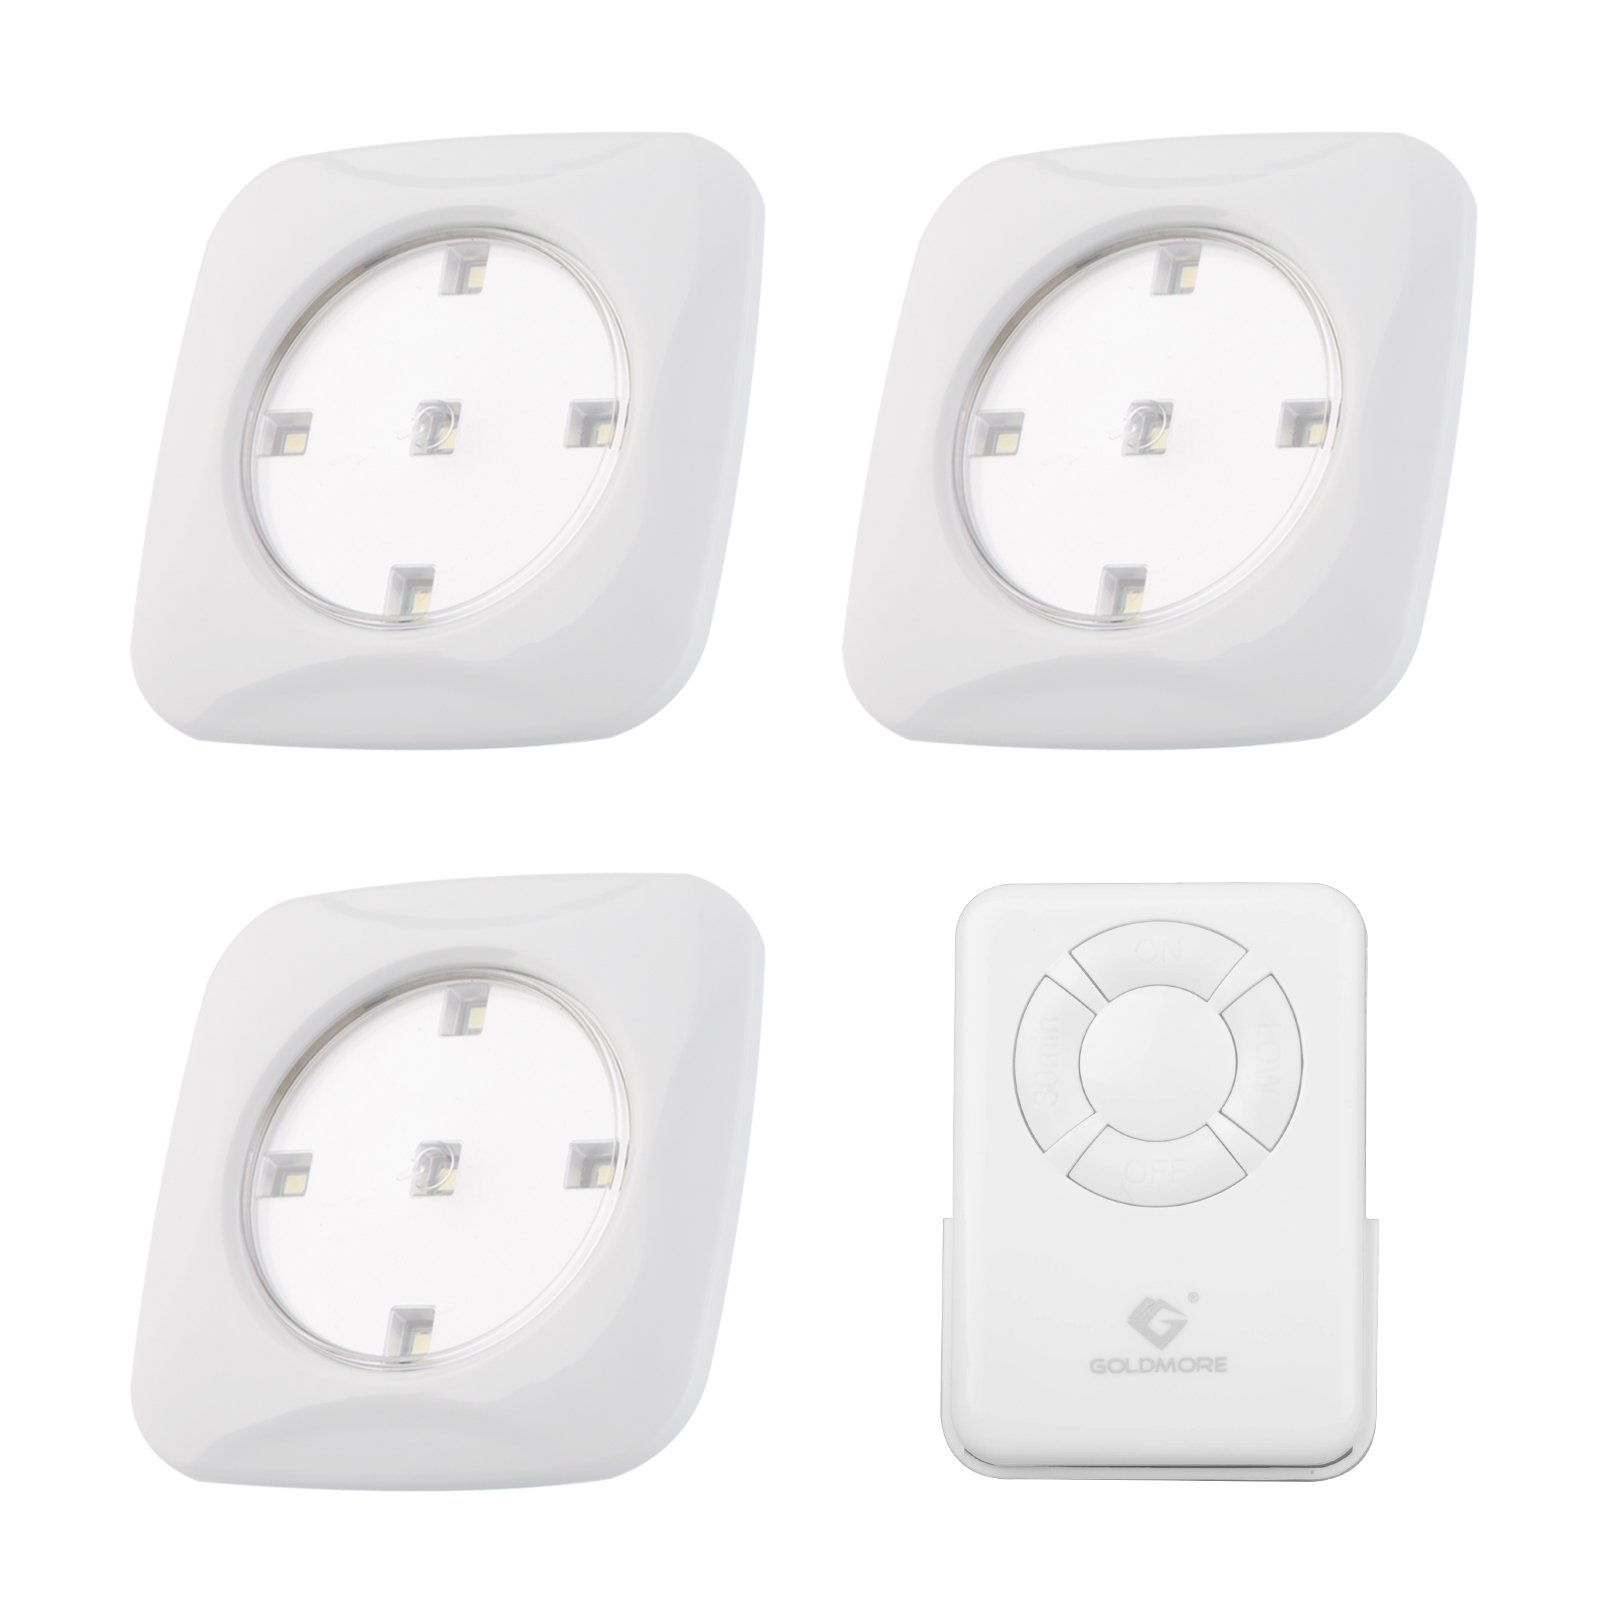 3 Pack Tap Light,5 LED Battery-powered Wireless NightLight Remote Control,Goldmore Touch Lights Stick-on Push Light for Closets,Cabinets,Kitchen,Utility Rooms,Pantries,Hallway,Garage-White